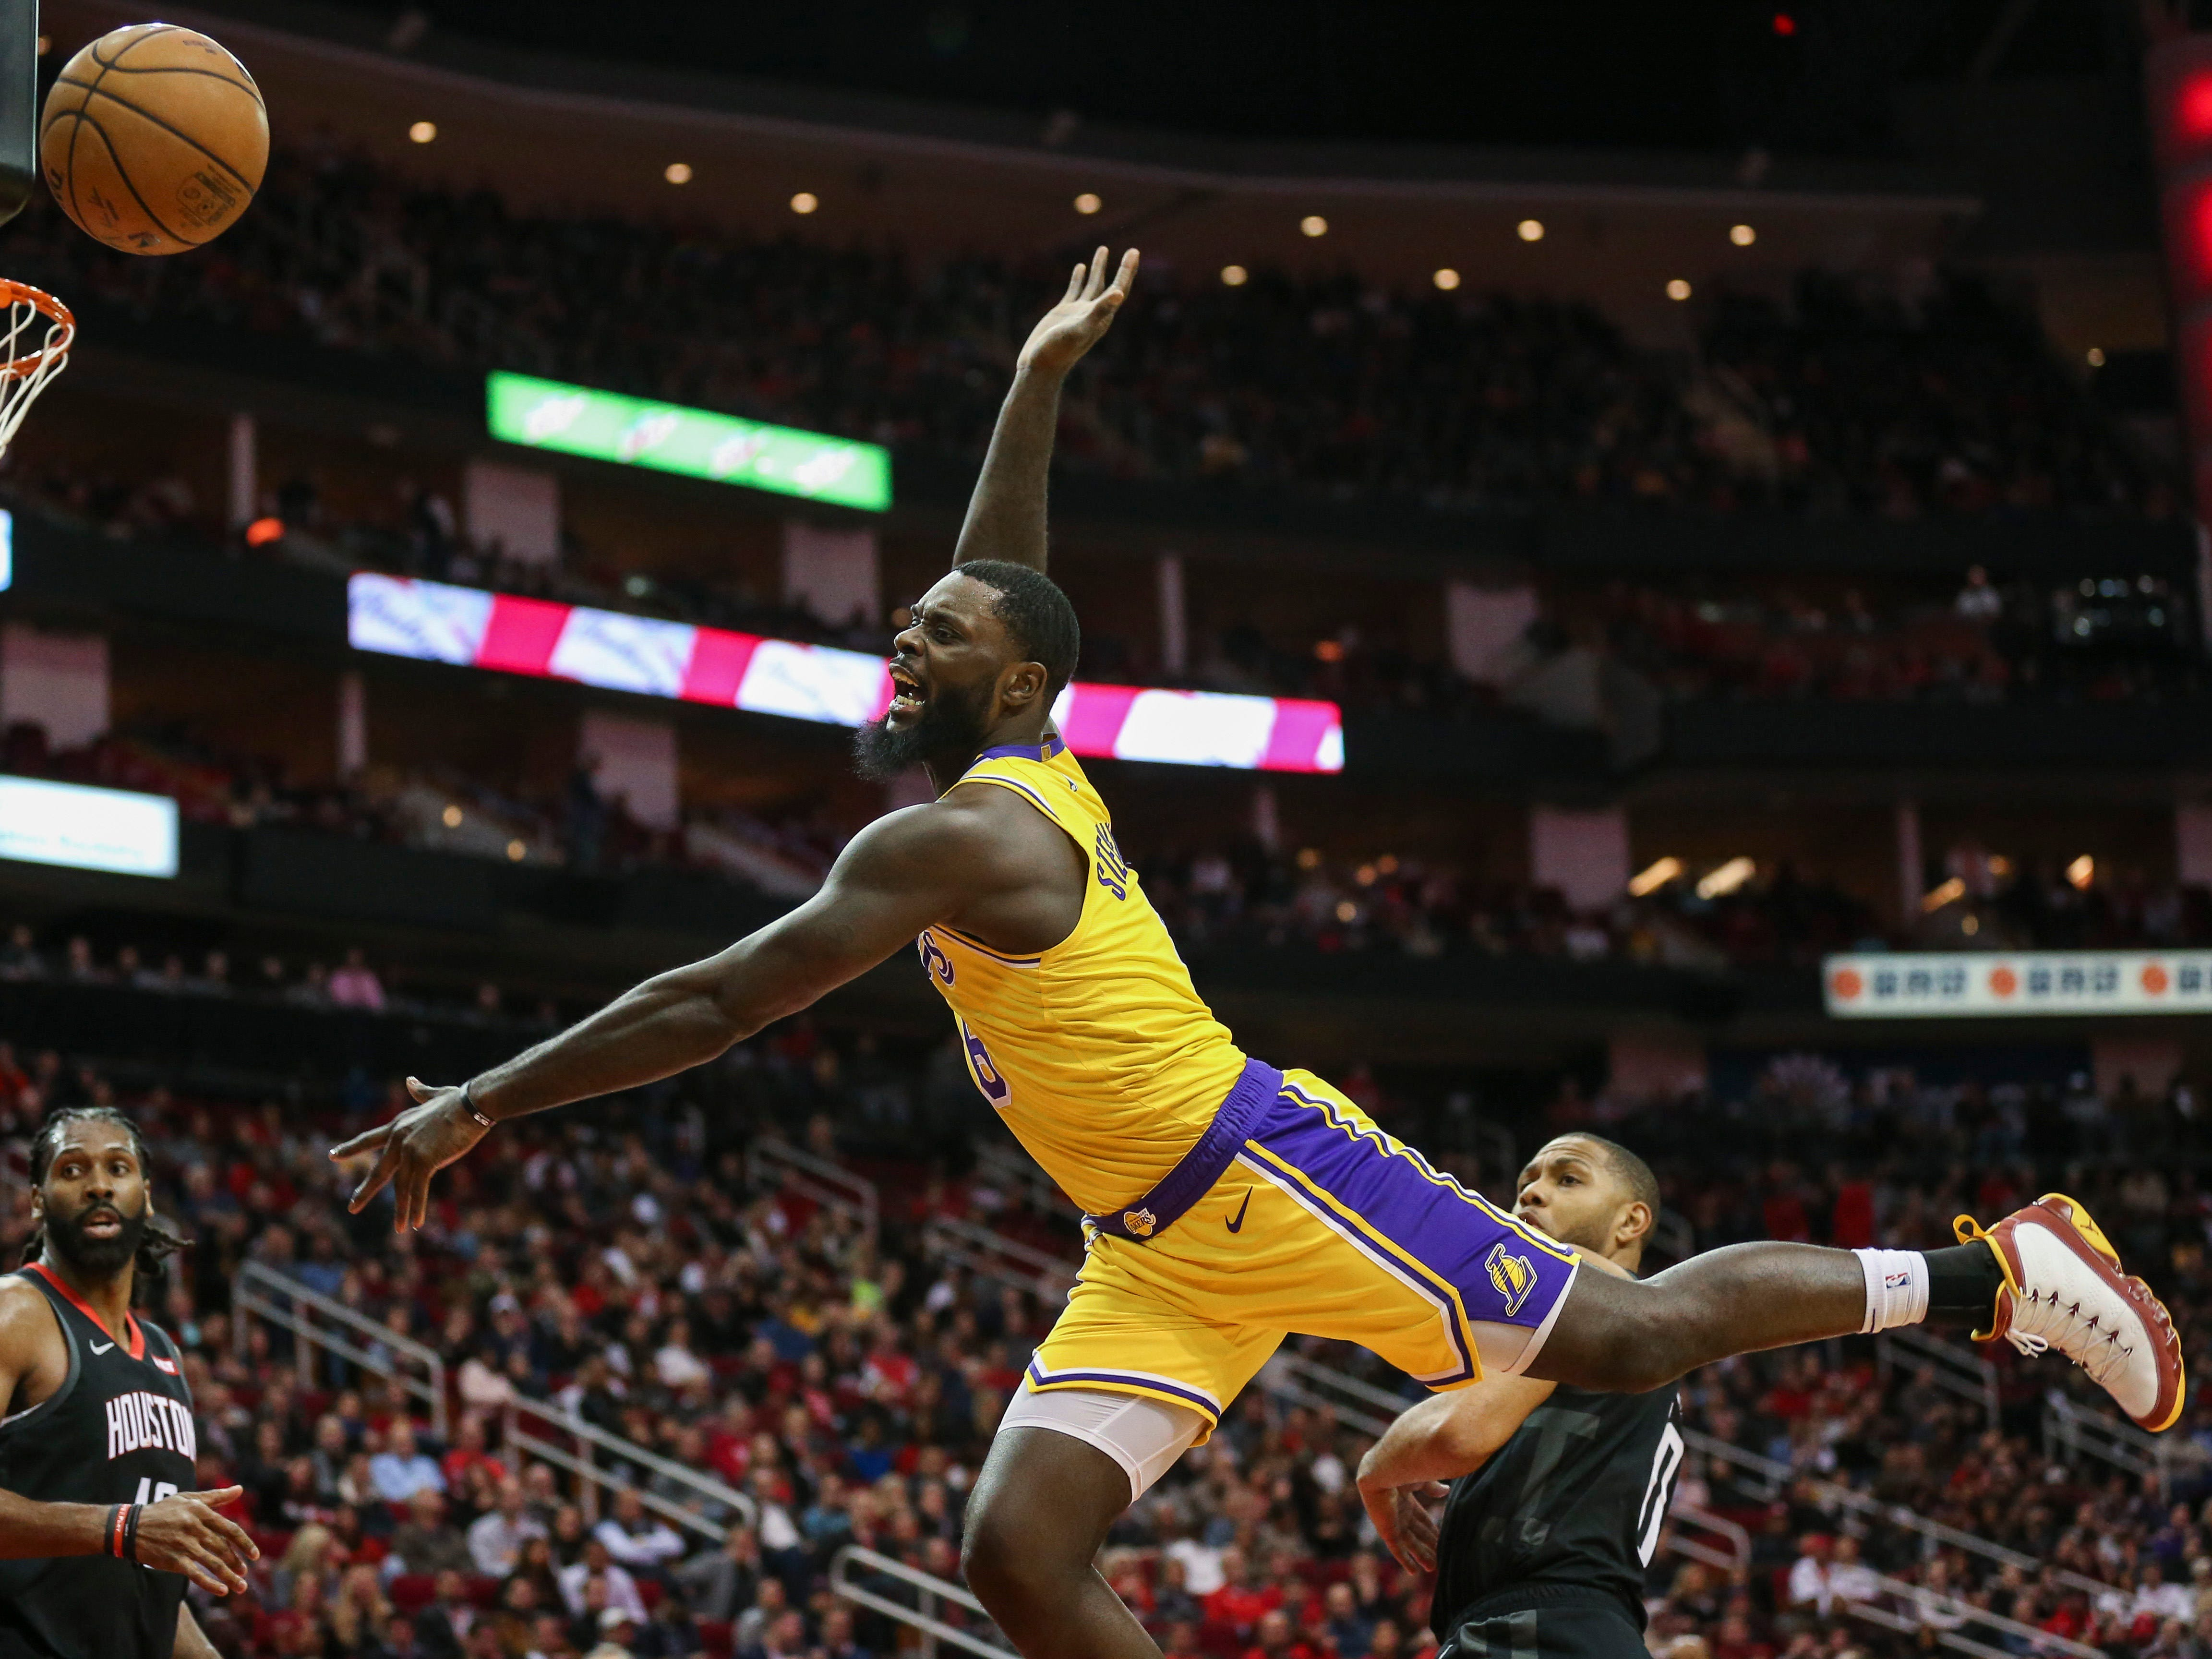 Jan. 19: Lakers guard Lance Stephenson loses control of the ball on a wild drive to the basket during the fourth quarter against the Rockets in Houston.